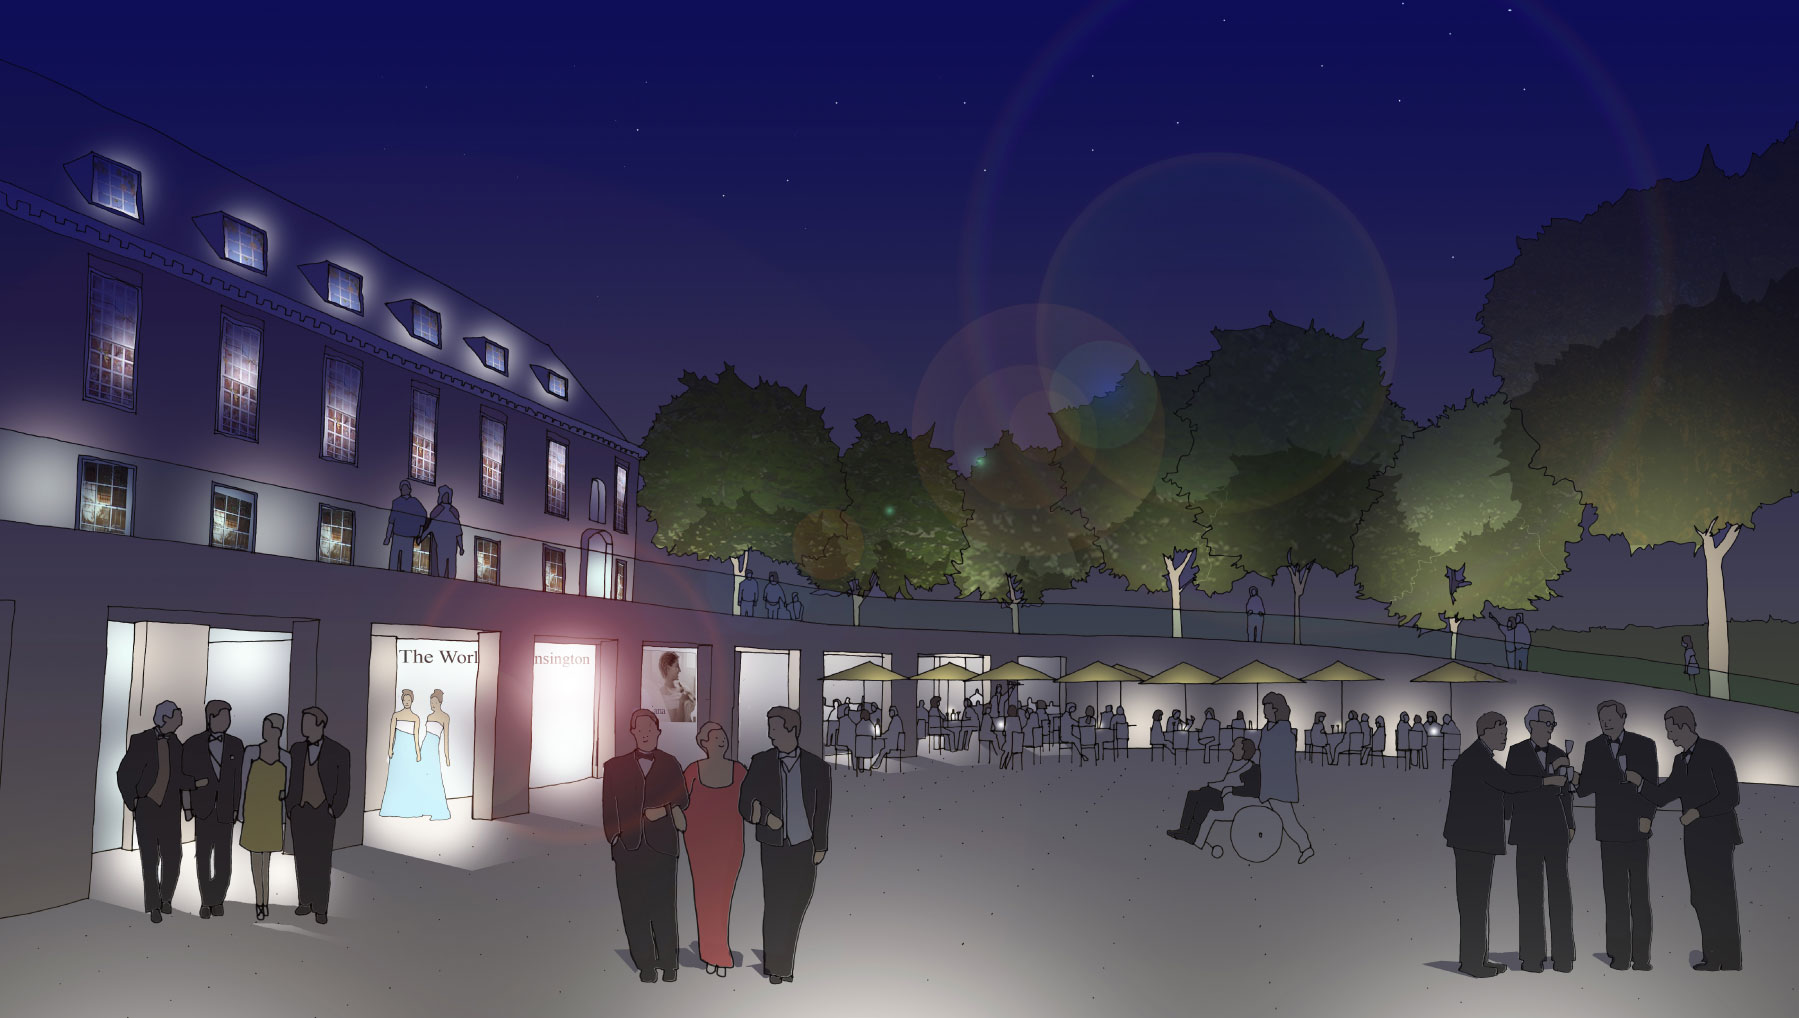 Kensington Palace Visitor Centre Night Sketch GHK Architects